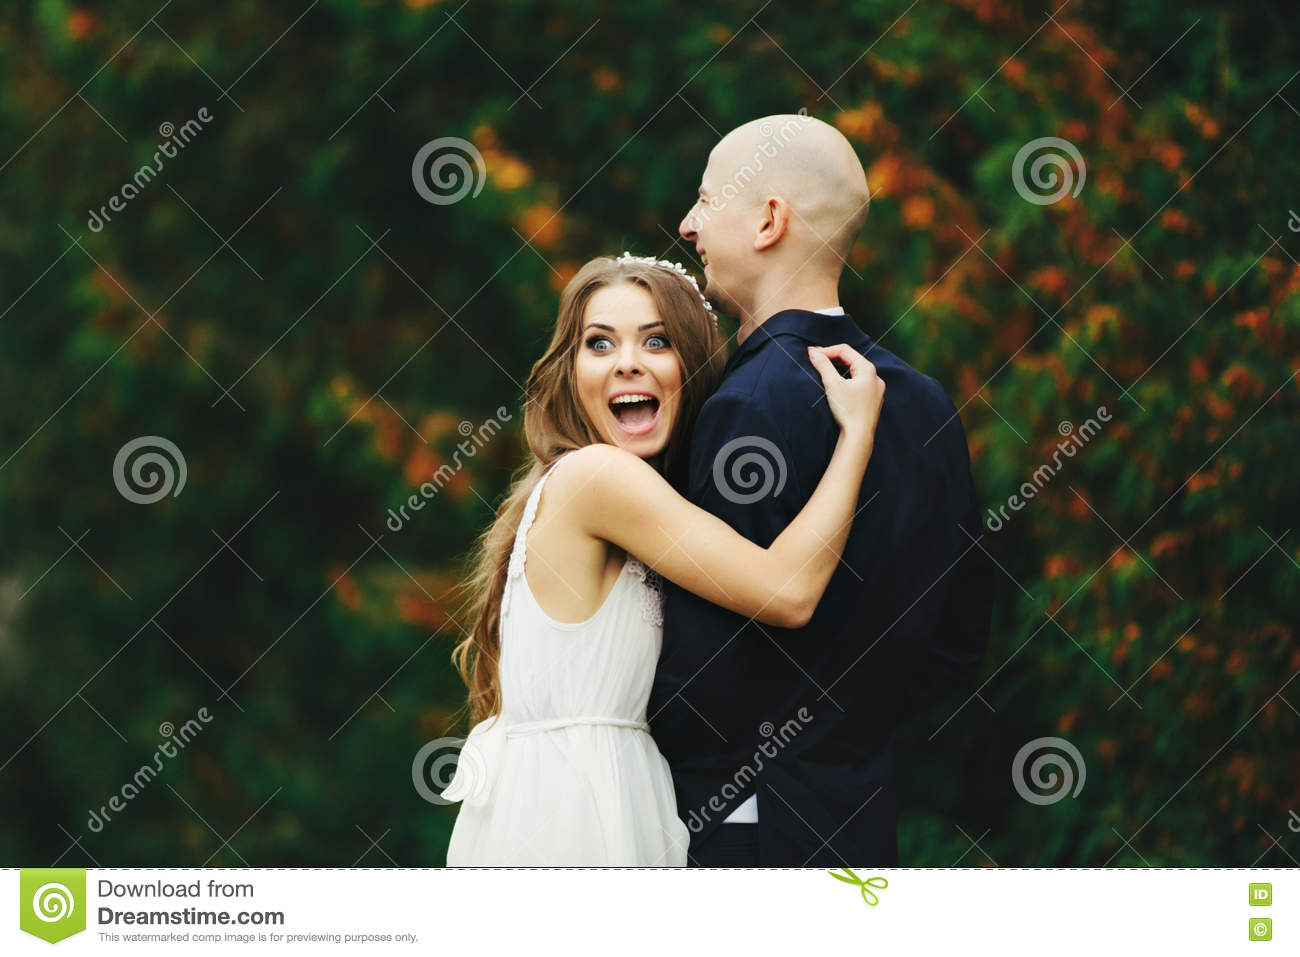 Bride looks funny with eyes open wide while she hugs a groom